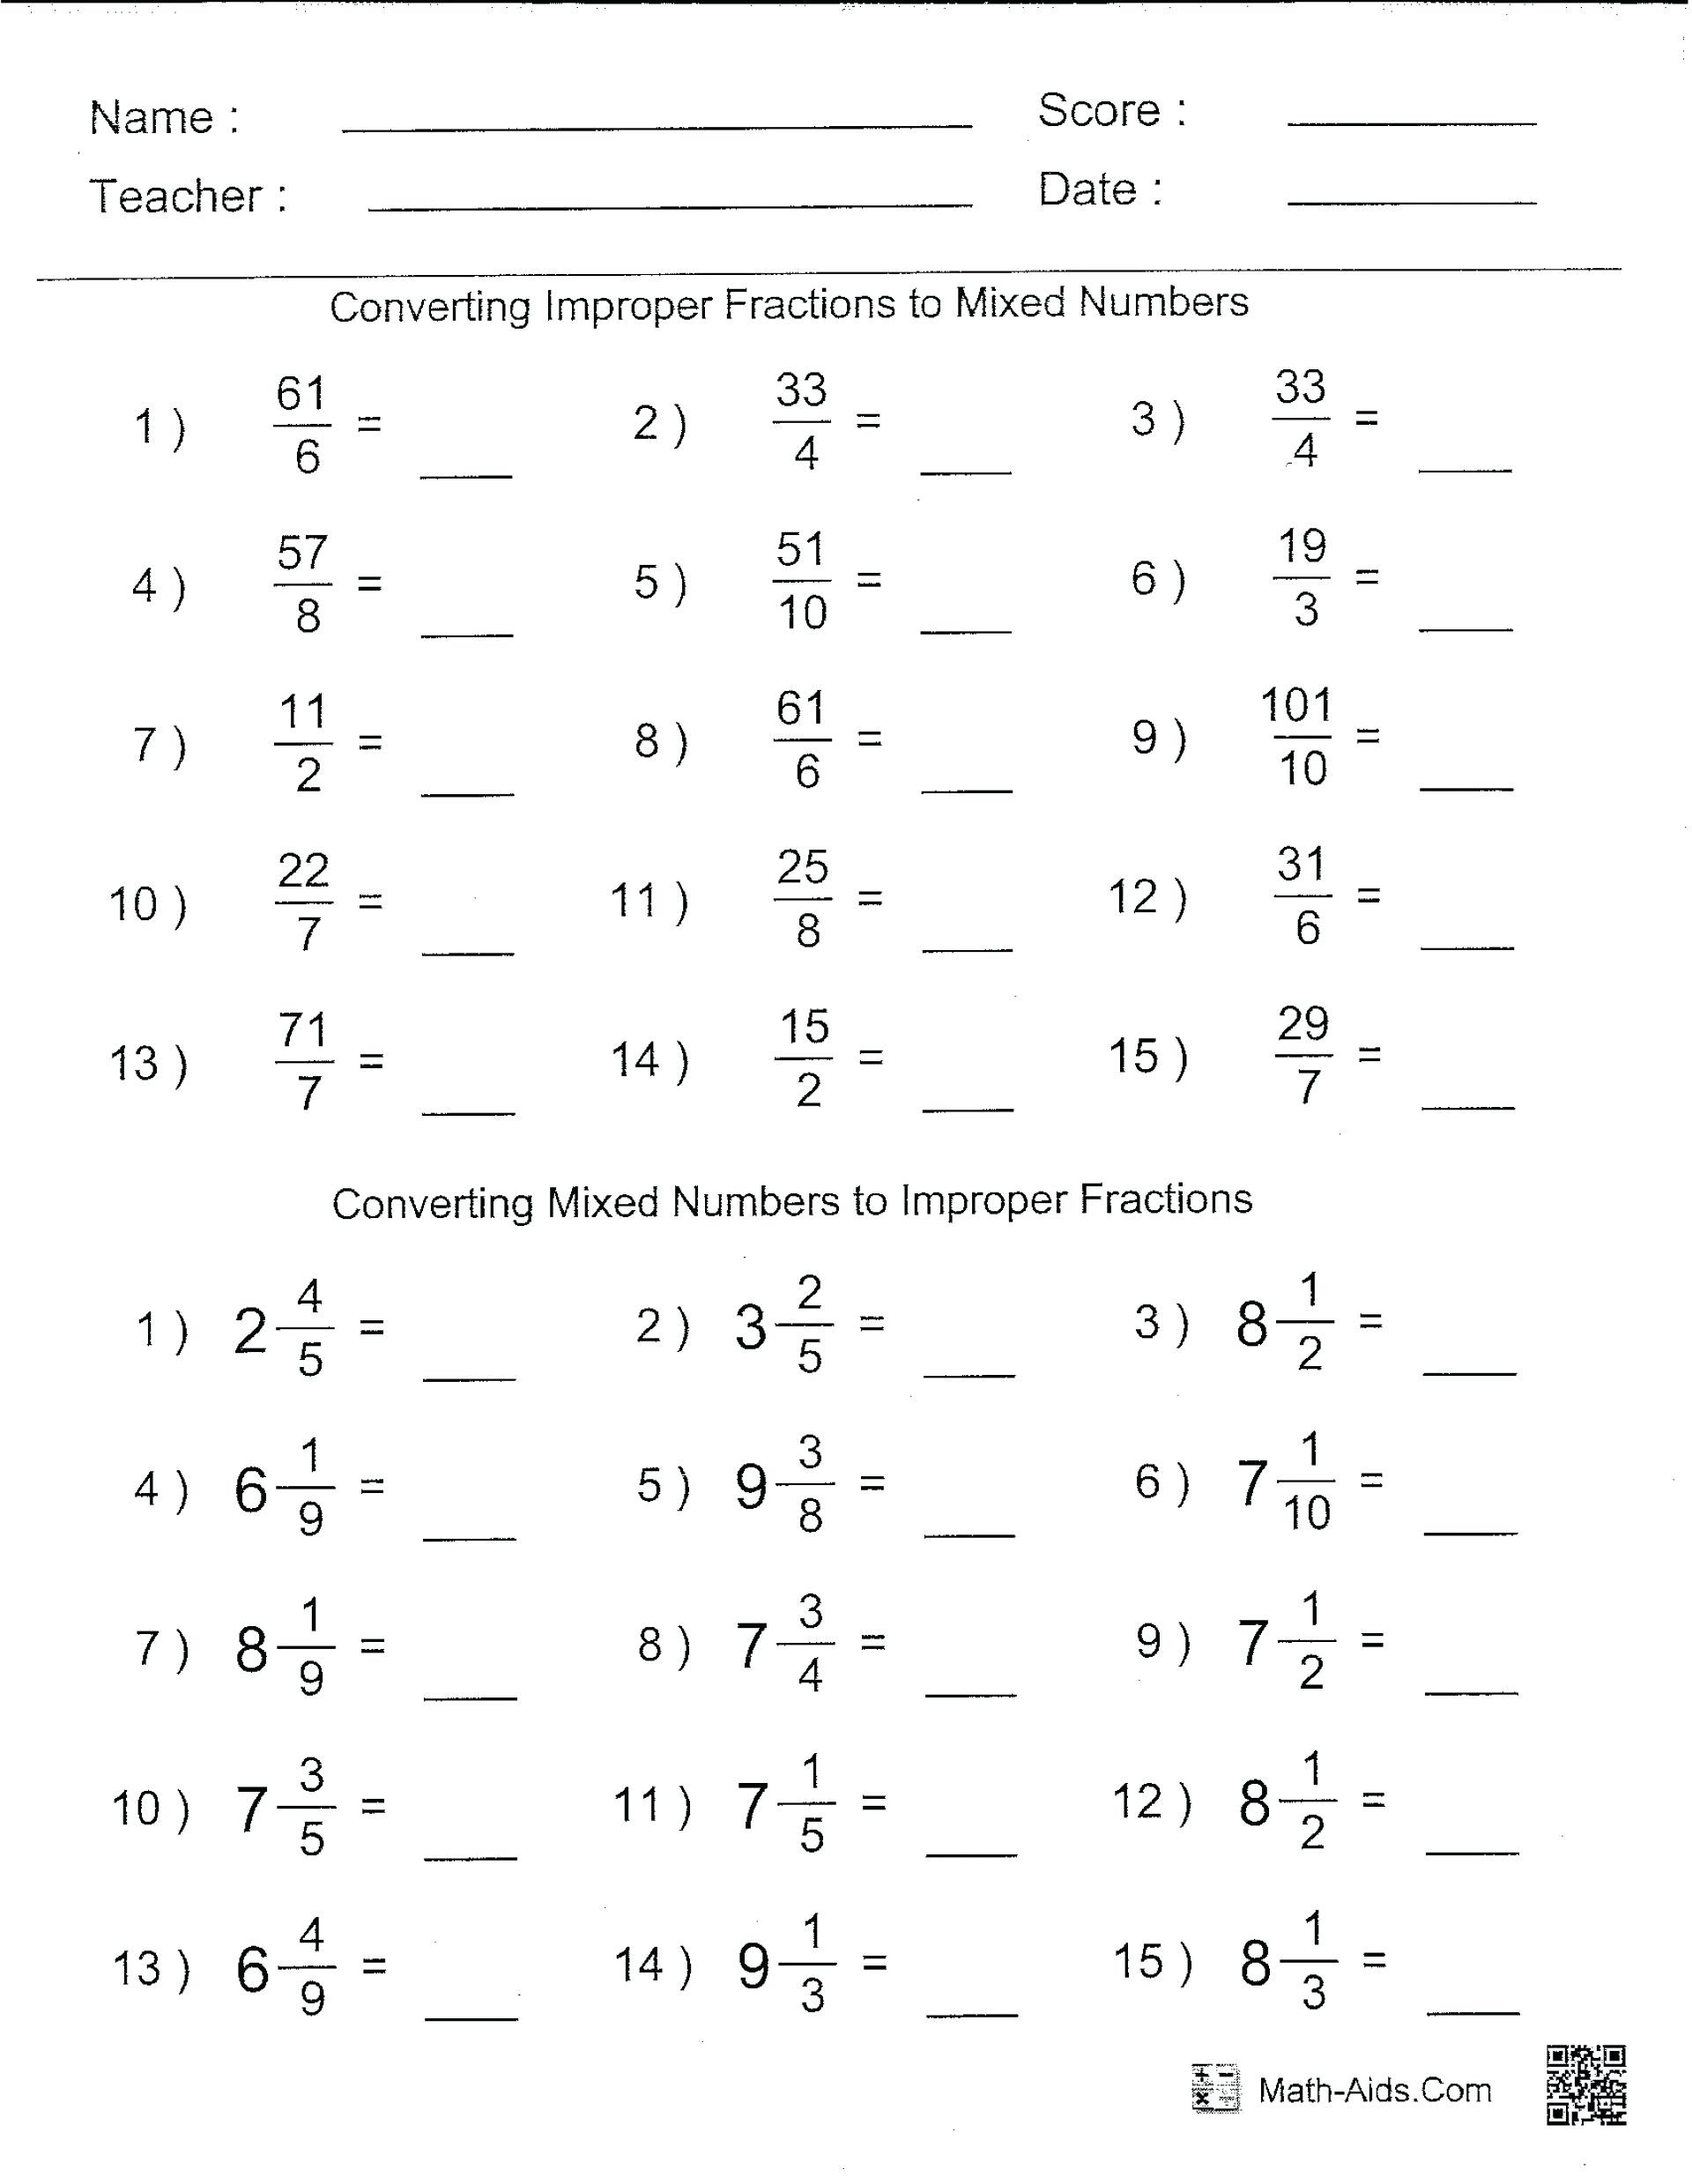 hight resolution of 4 Free Math Worksheets First Grade 1 Geometry - apocalomegaproductions.com